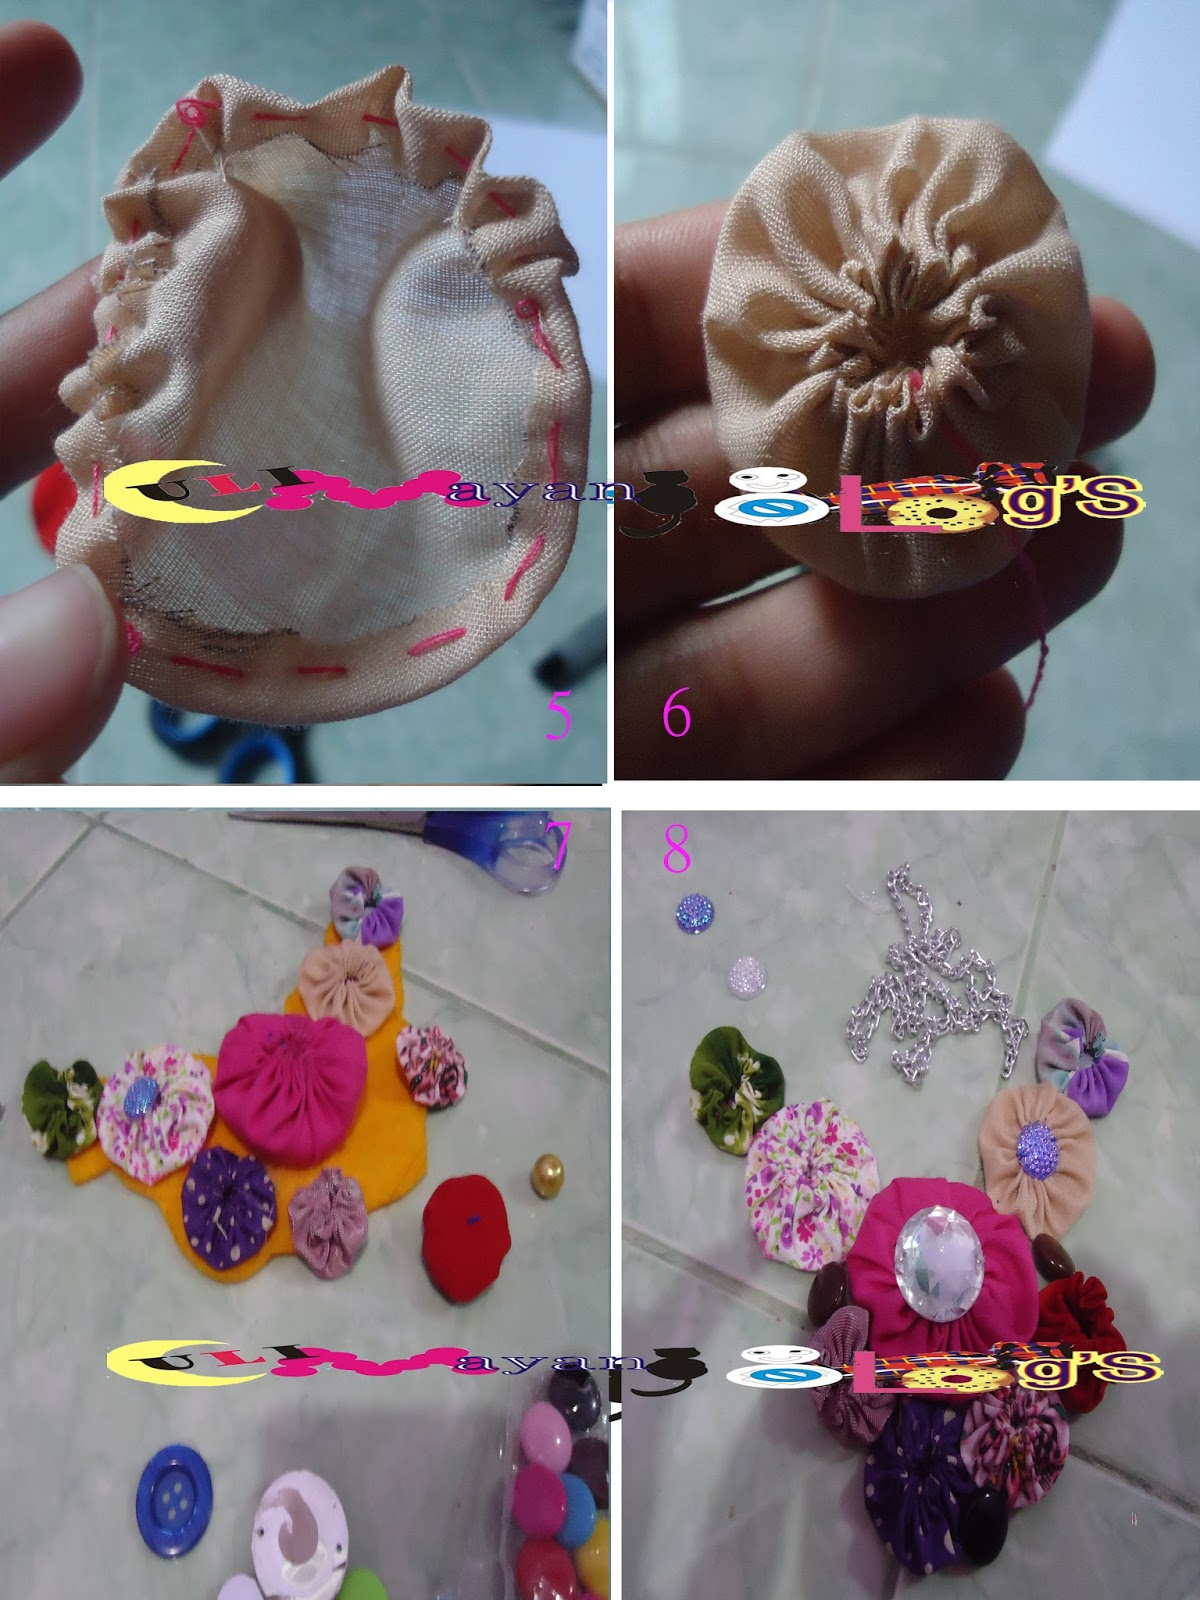 uli mayang: DIY: yoyo necklace / kalung yoyo kain perca